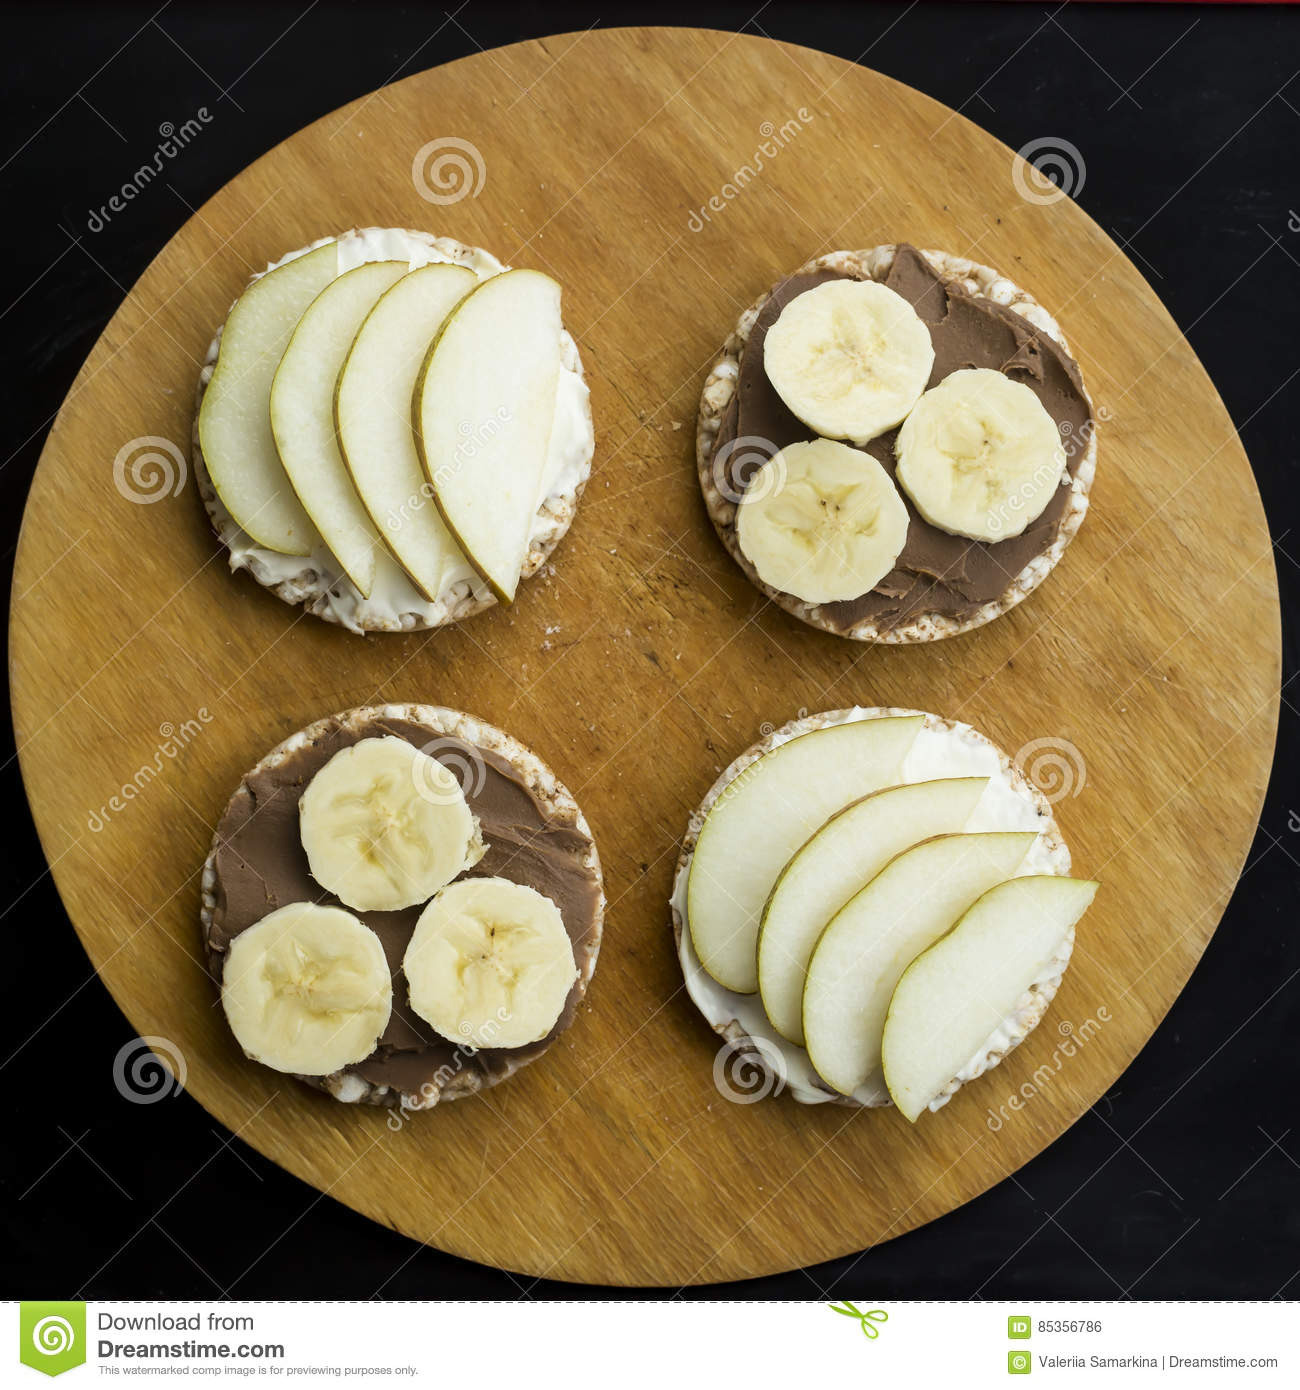 Sweet sandwiches with banana and peanut butter, cheese and pear on circular loaves buckwheat. top view